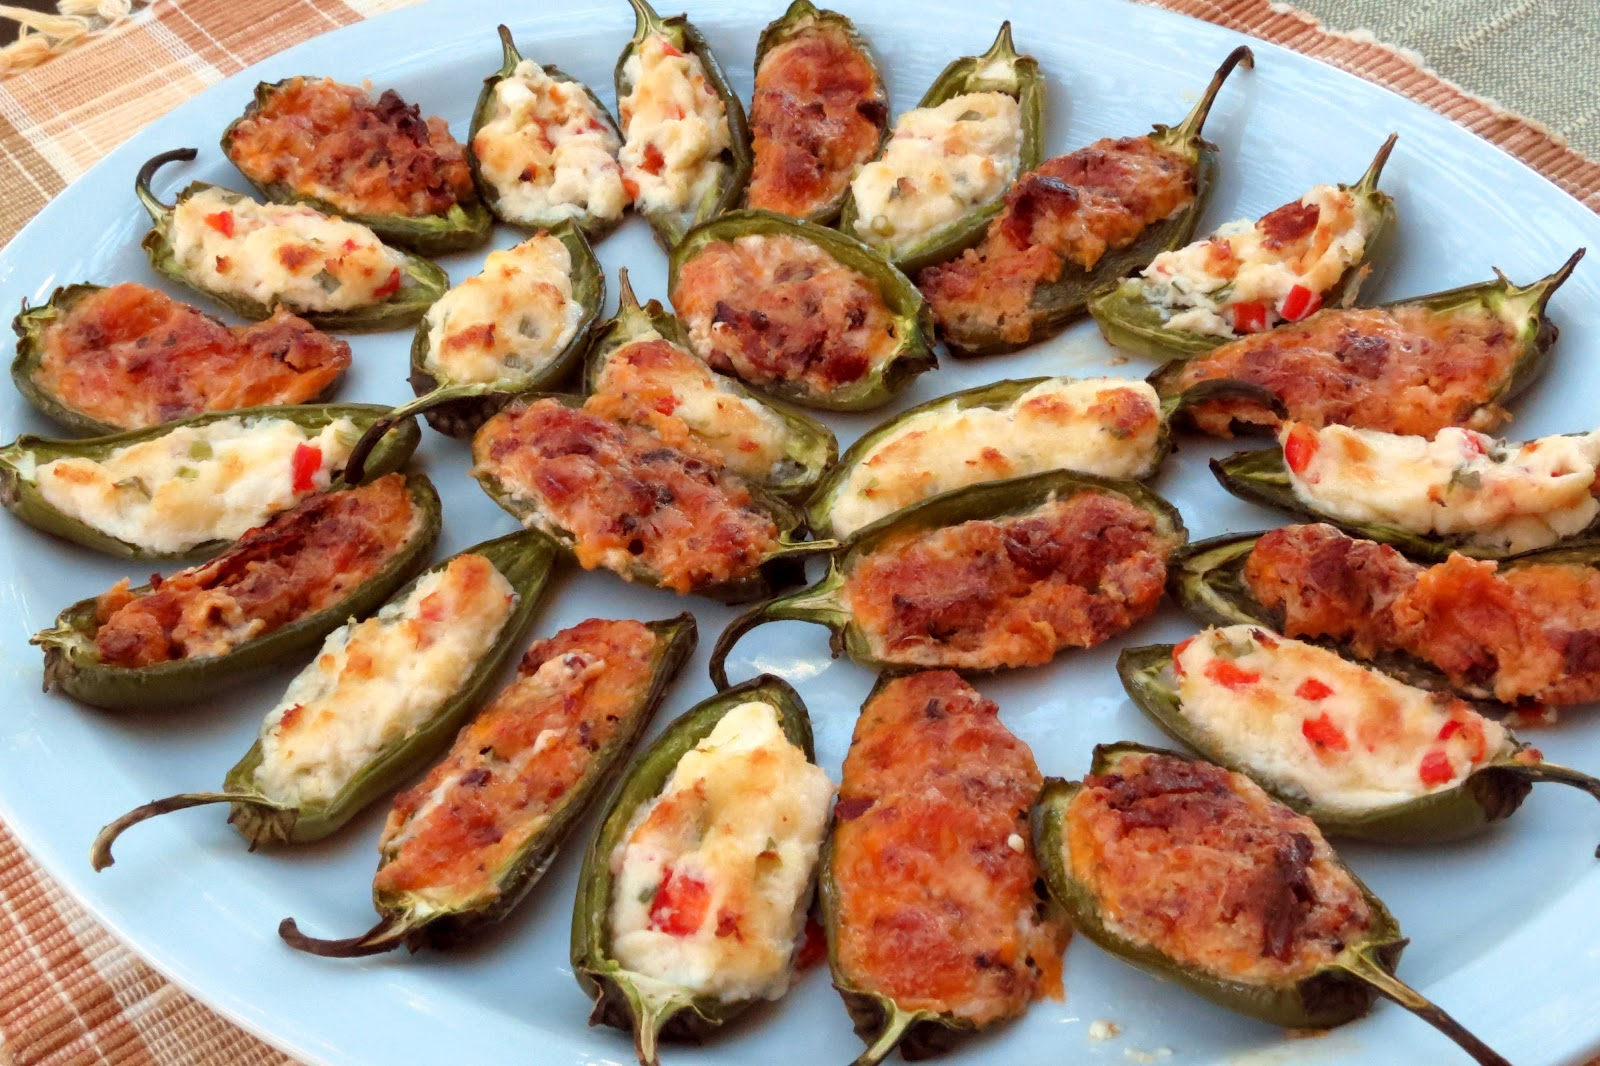 Dinner with the Welches: Baked Stuffed Jalapenos